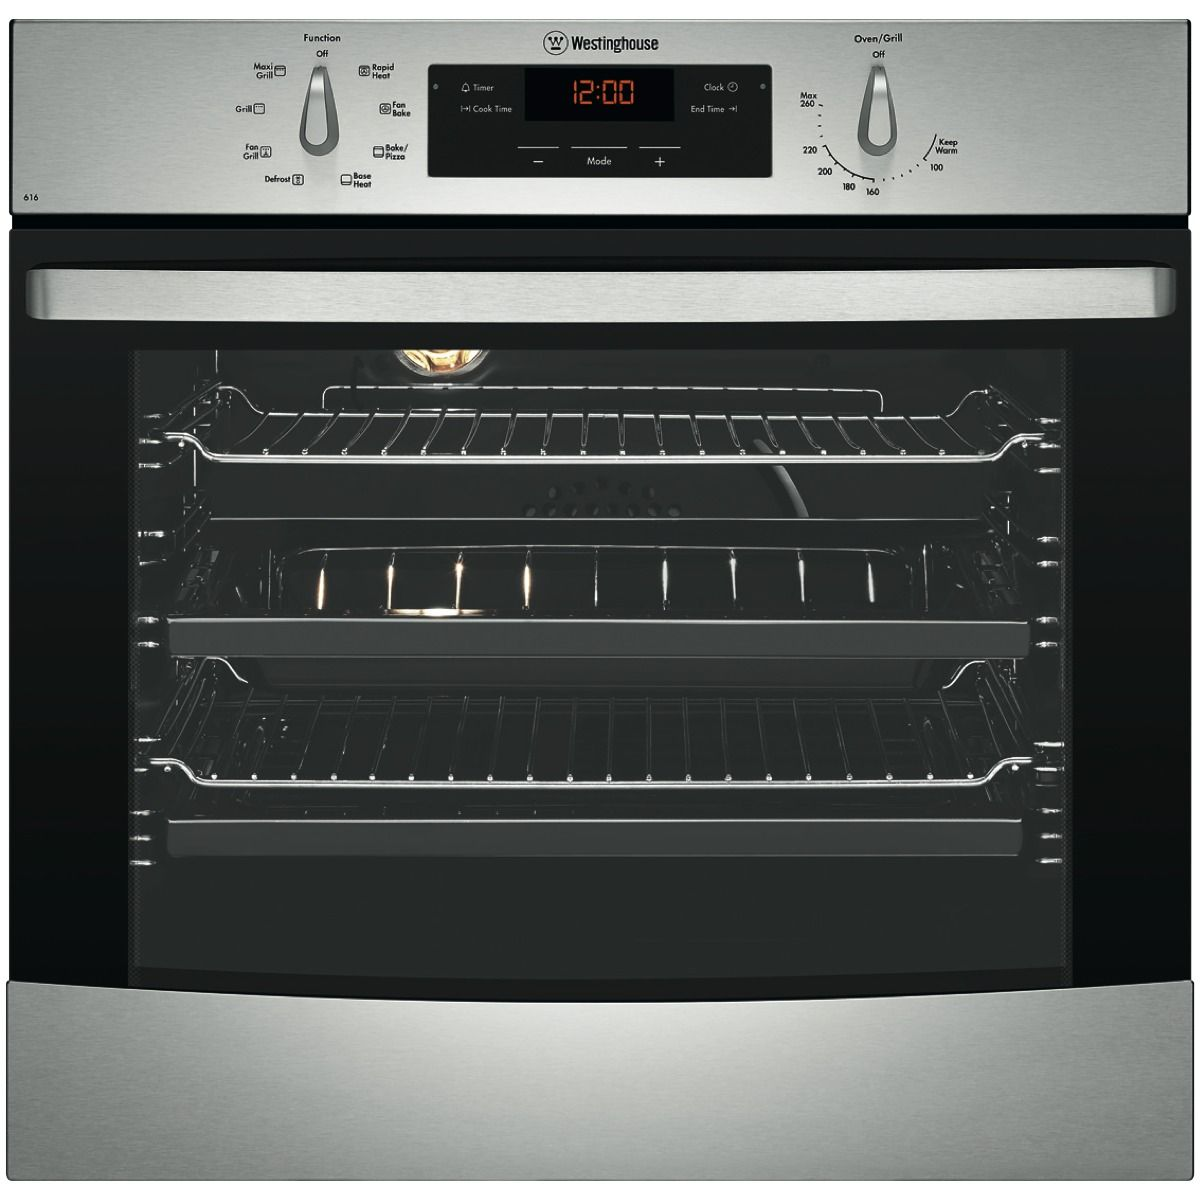 Westinghouse WVE616S 60cm Electric Oven at The Good Guys